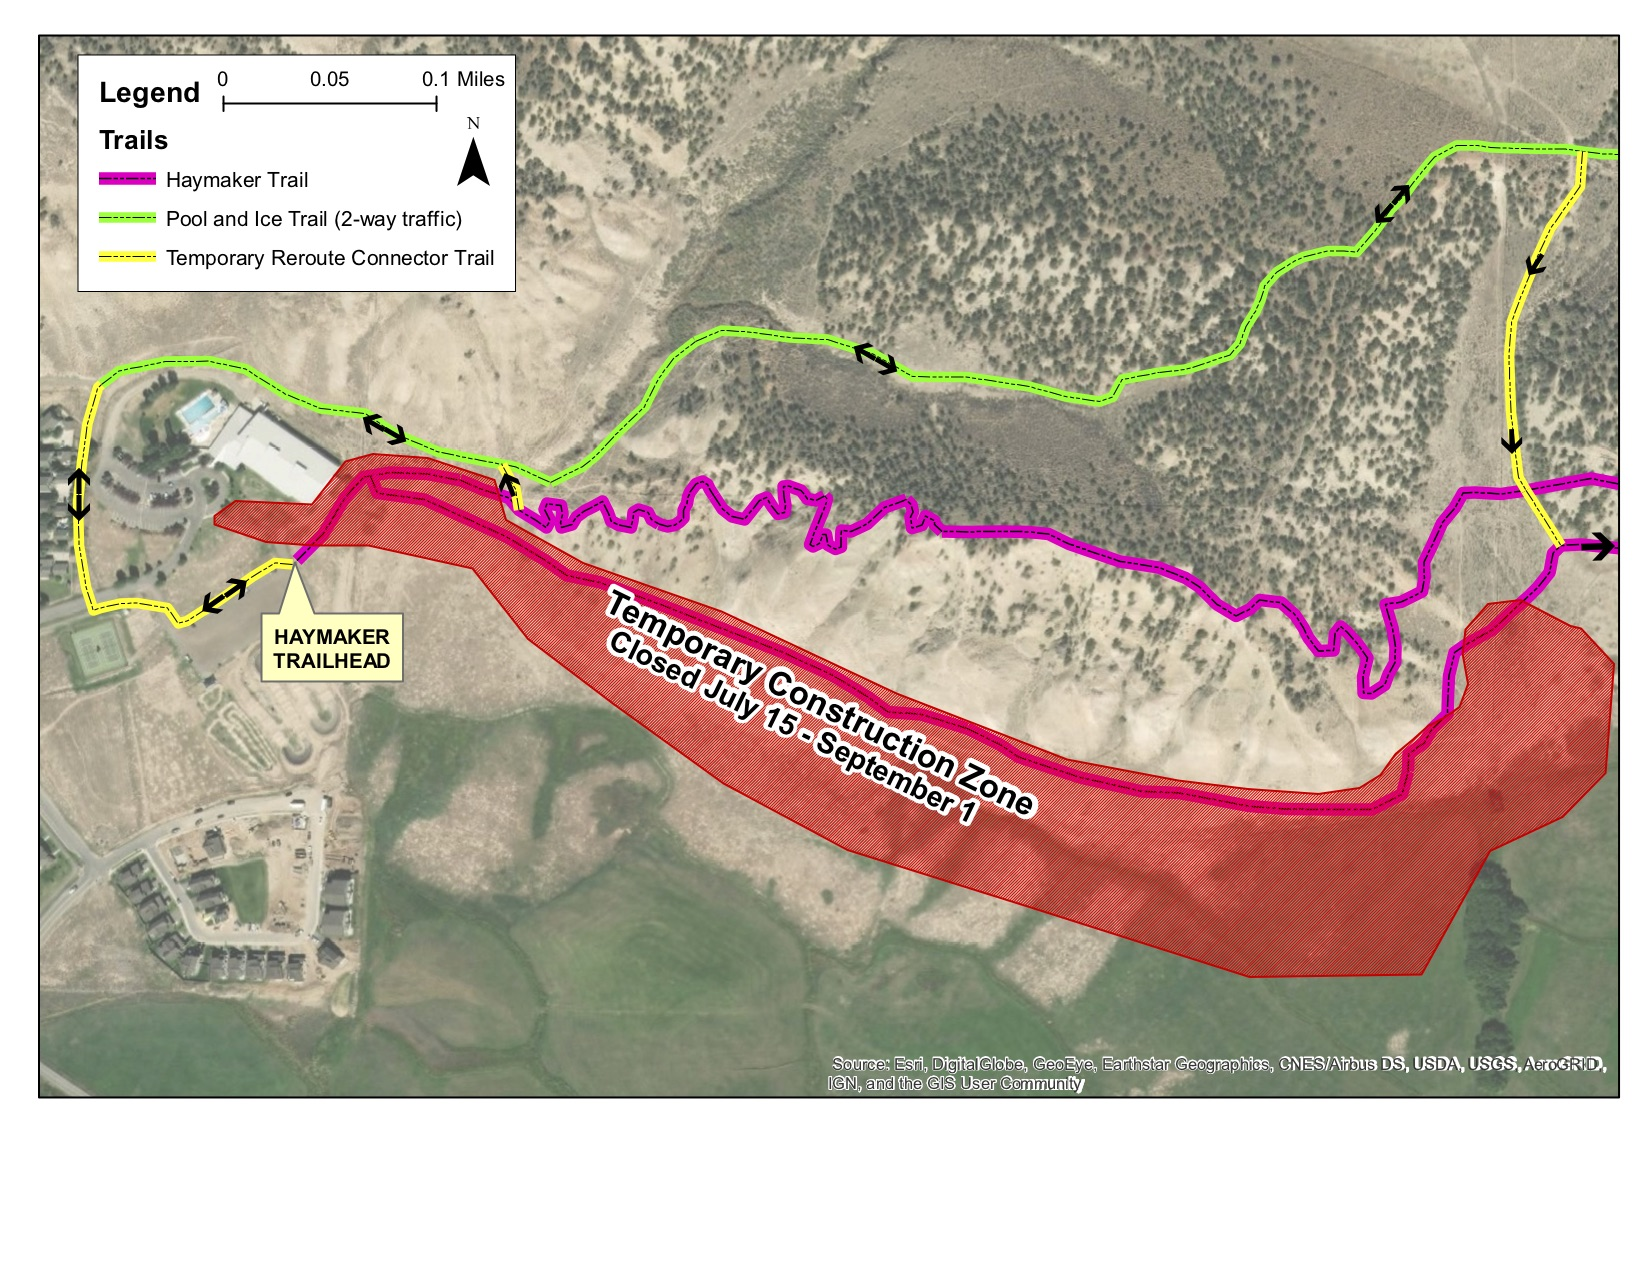 Above is a map of reroutes to the Haymaker Trail. Reroutes will be effective July 15-September 1, 2019.